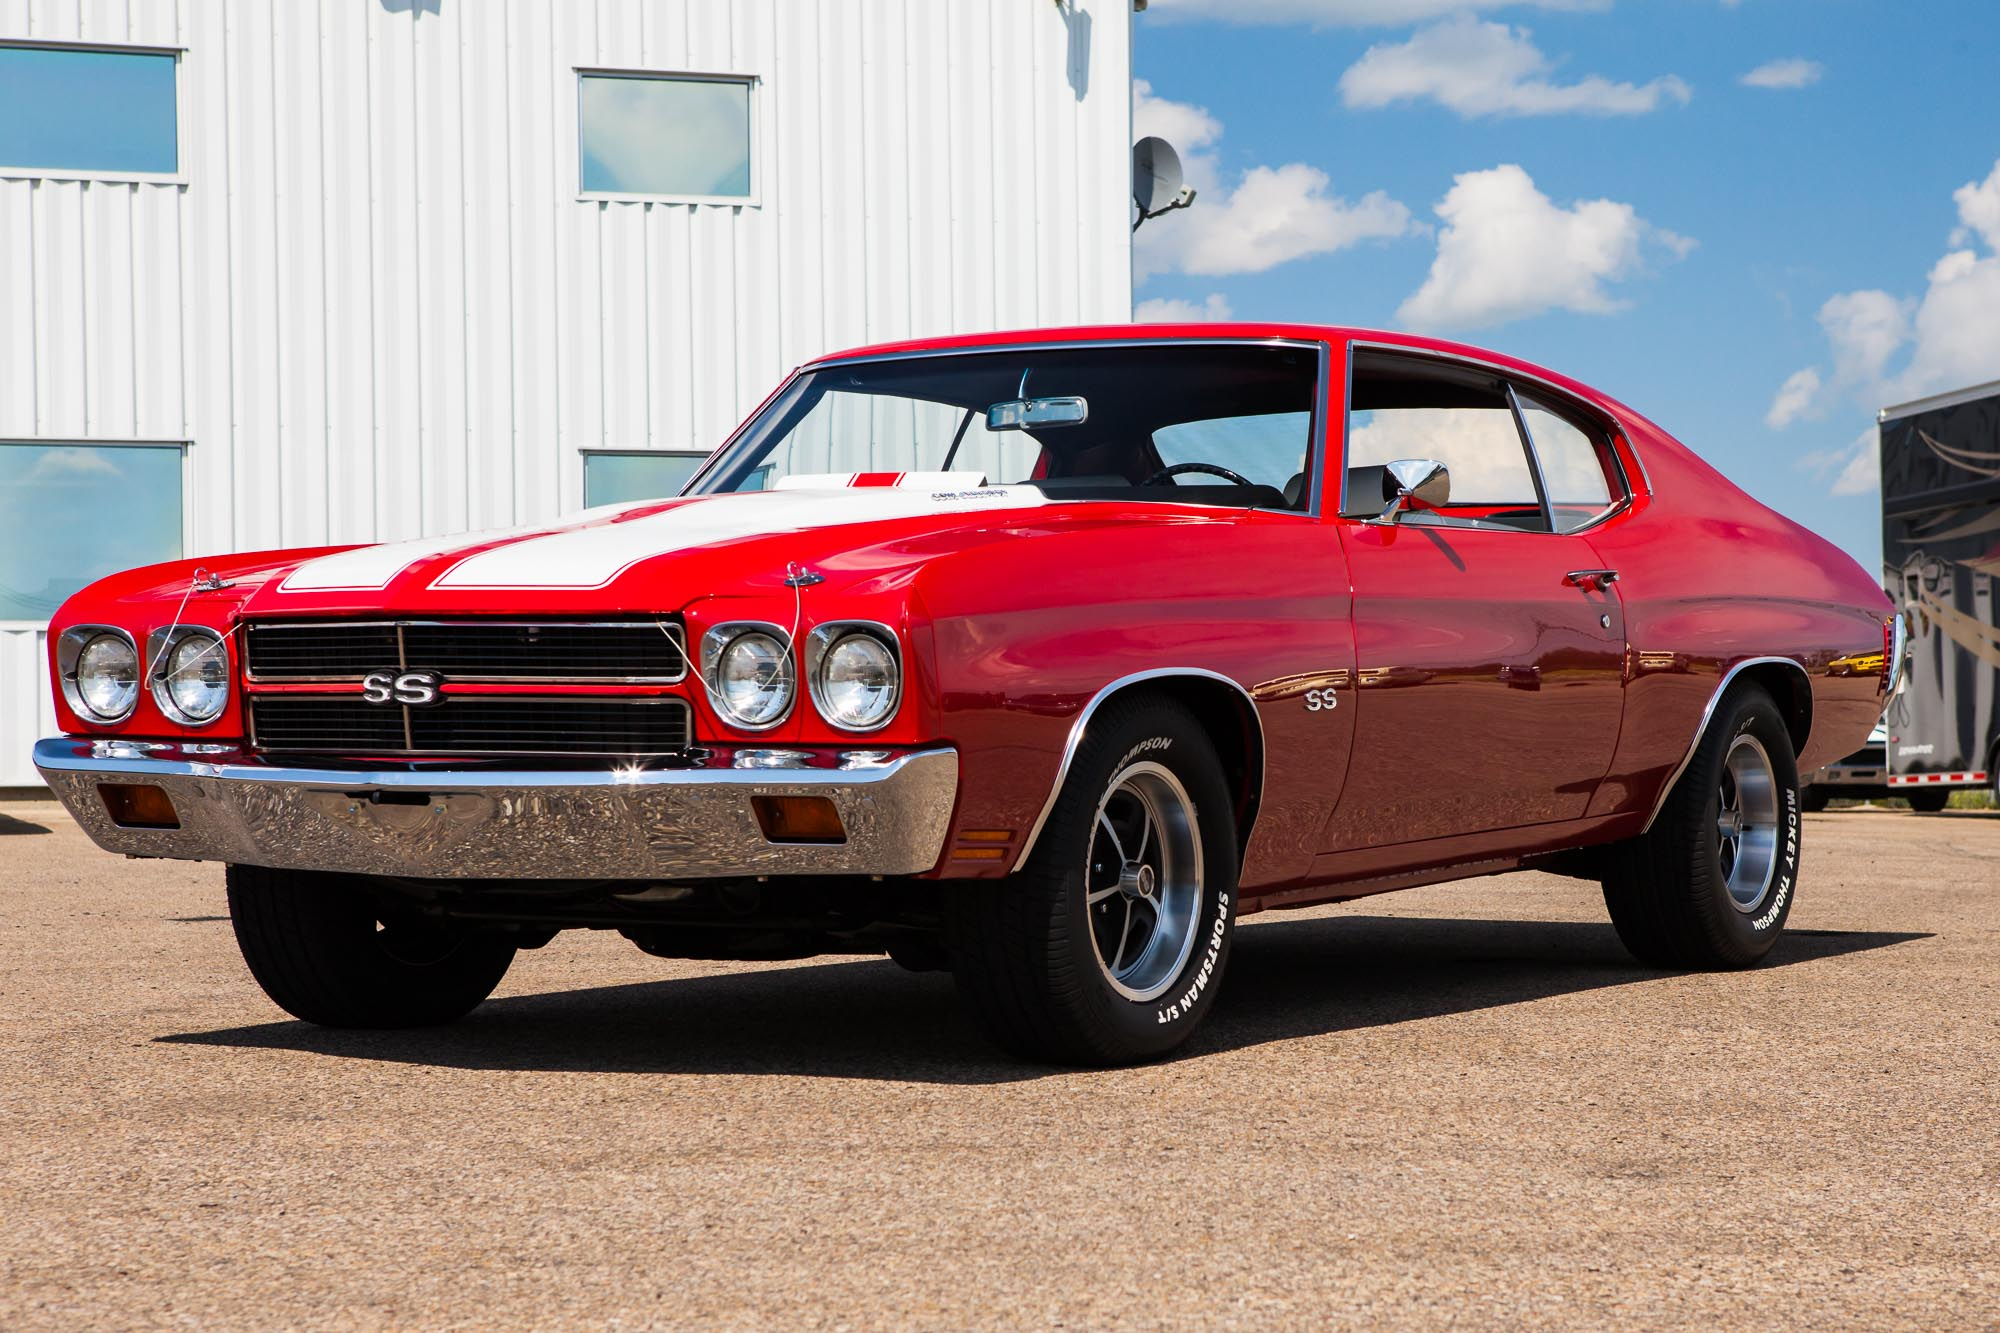 1970 Chevelle Ss The Iron Garage Make Your Own Beautiful  HD Wallpapers, Images Over 1000+ [ralydesign.ml]